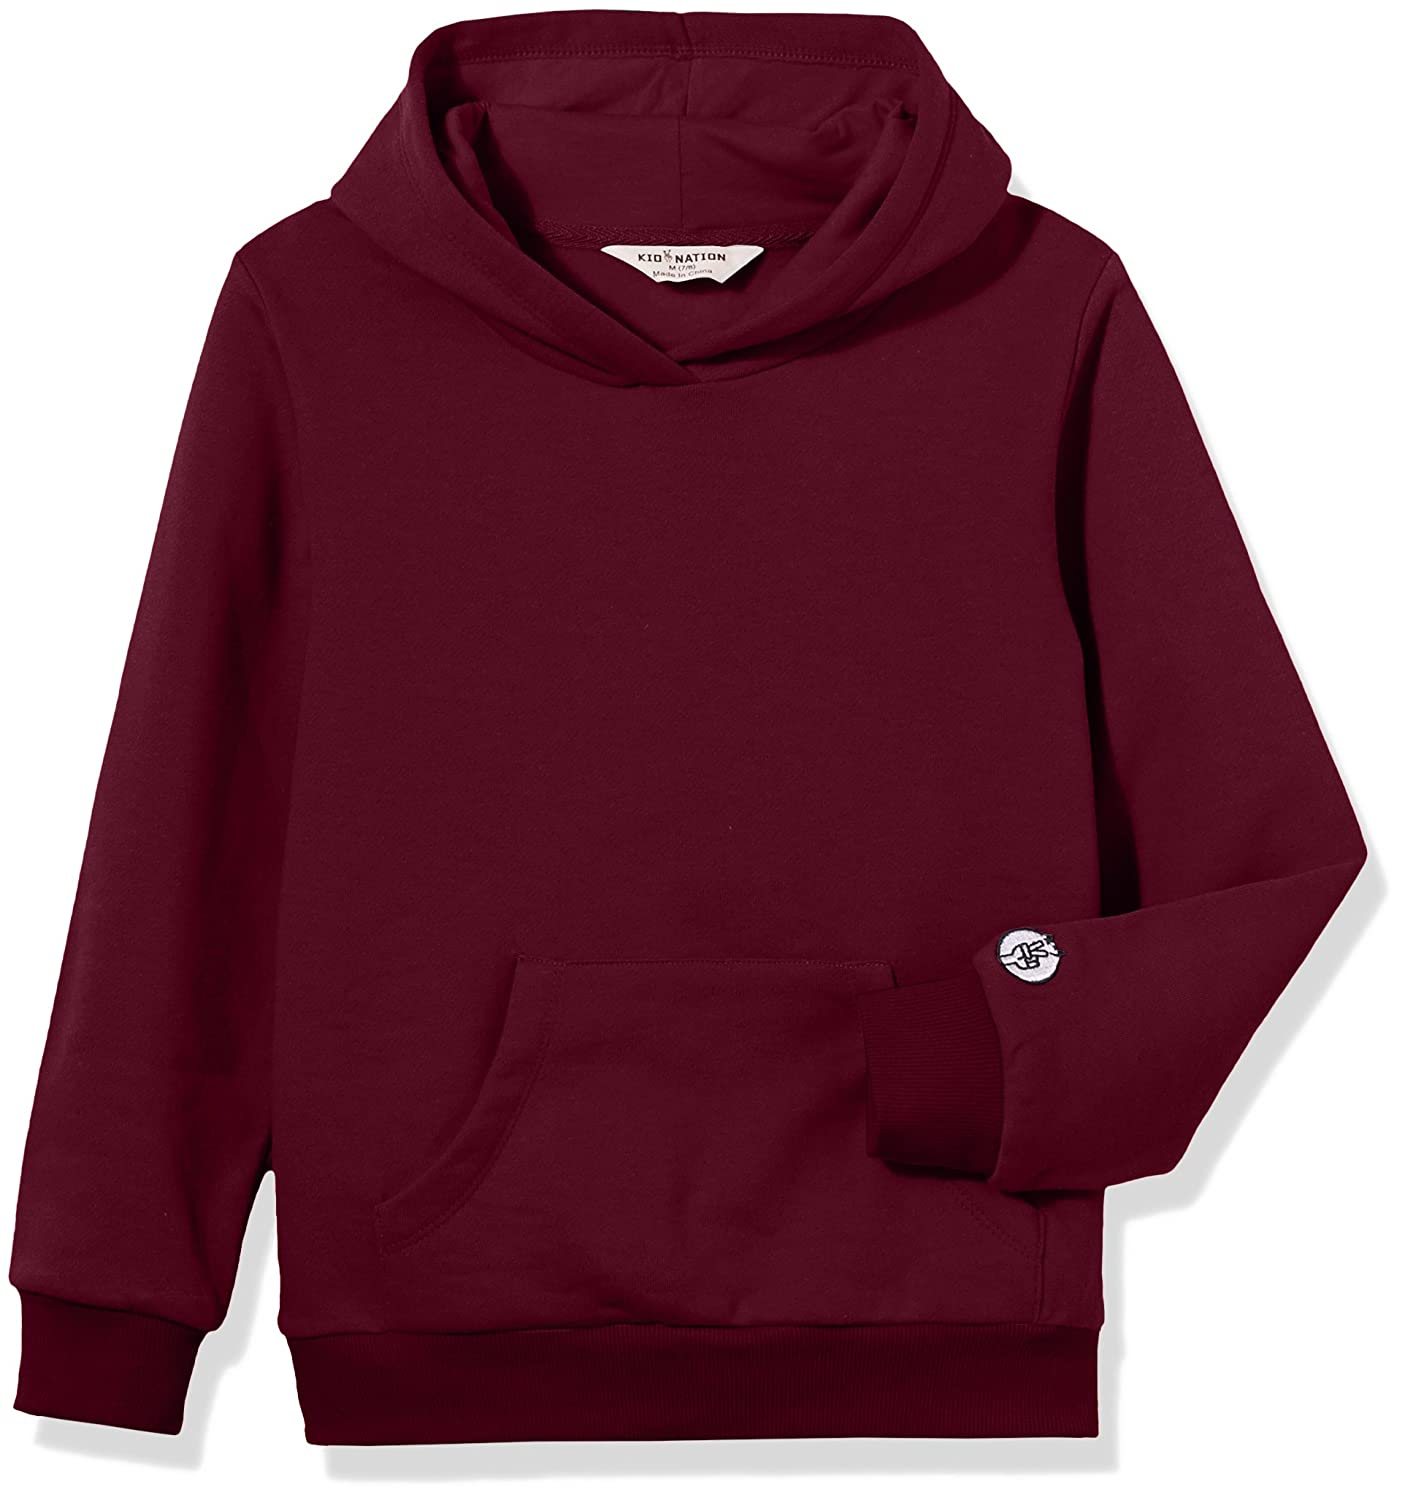 Kid Nation Kids Soft Brushed Fleece Casual Basic Pullover Hooded Sweatshirt Hoodie for Boys or Girls